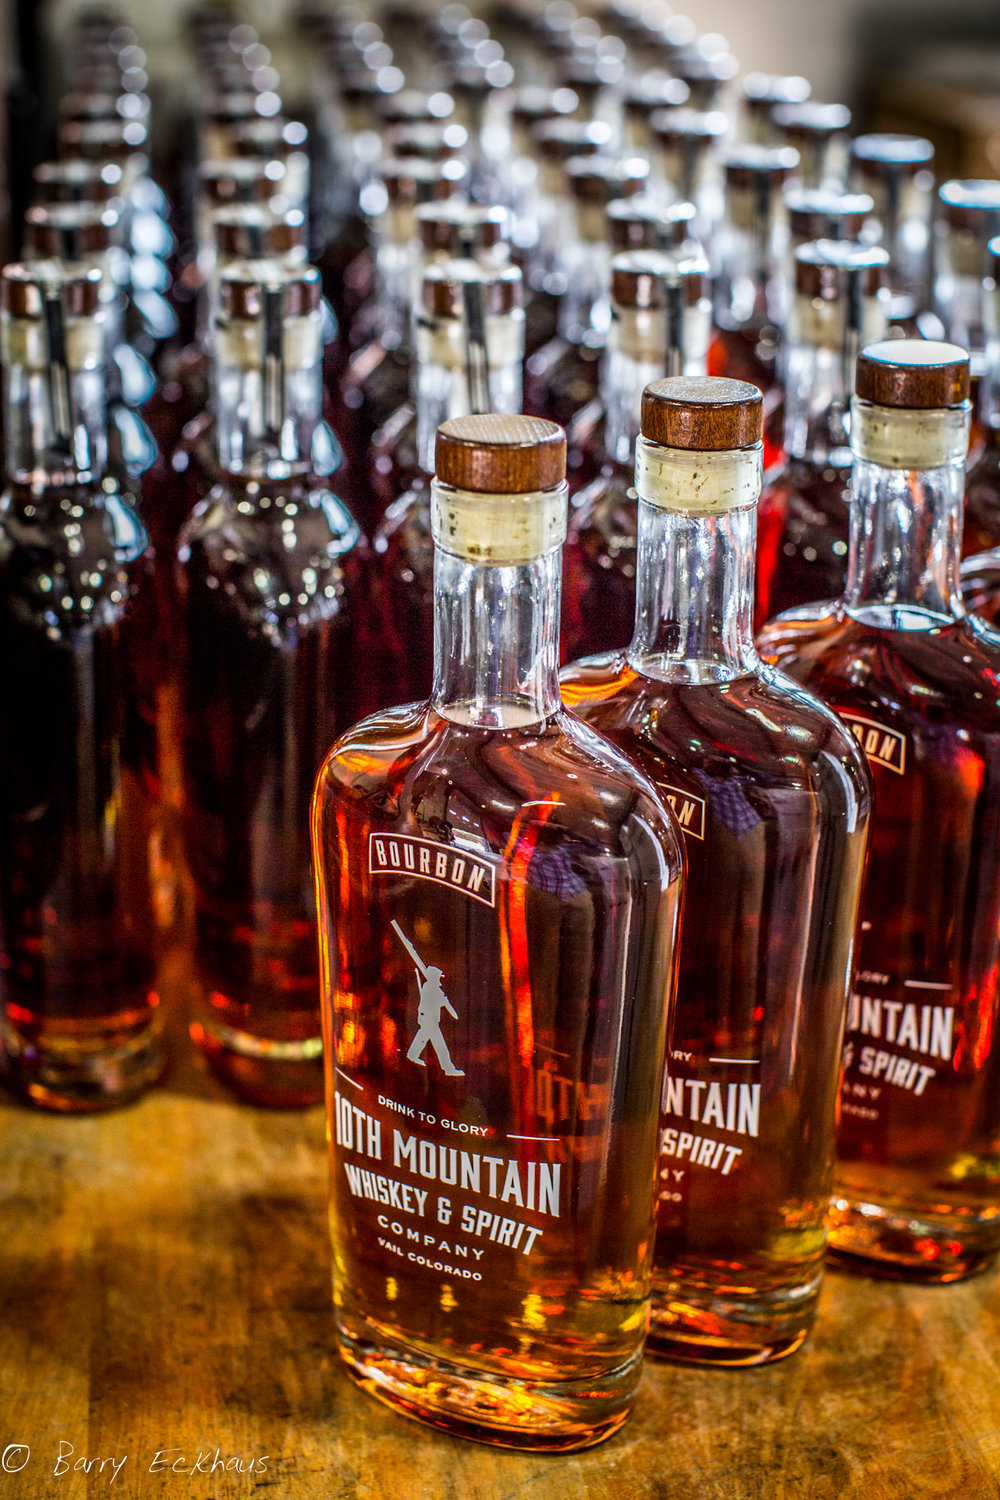 10th Mountain Distillery Bourbon